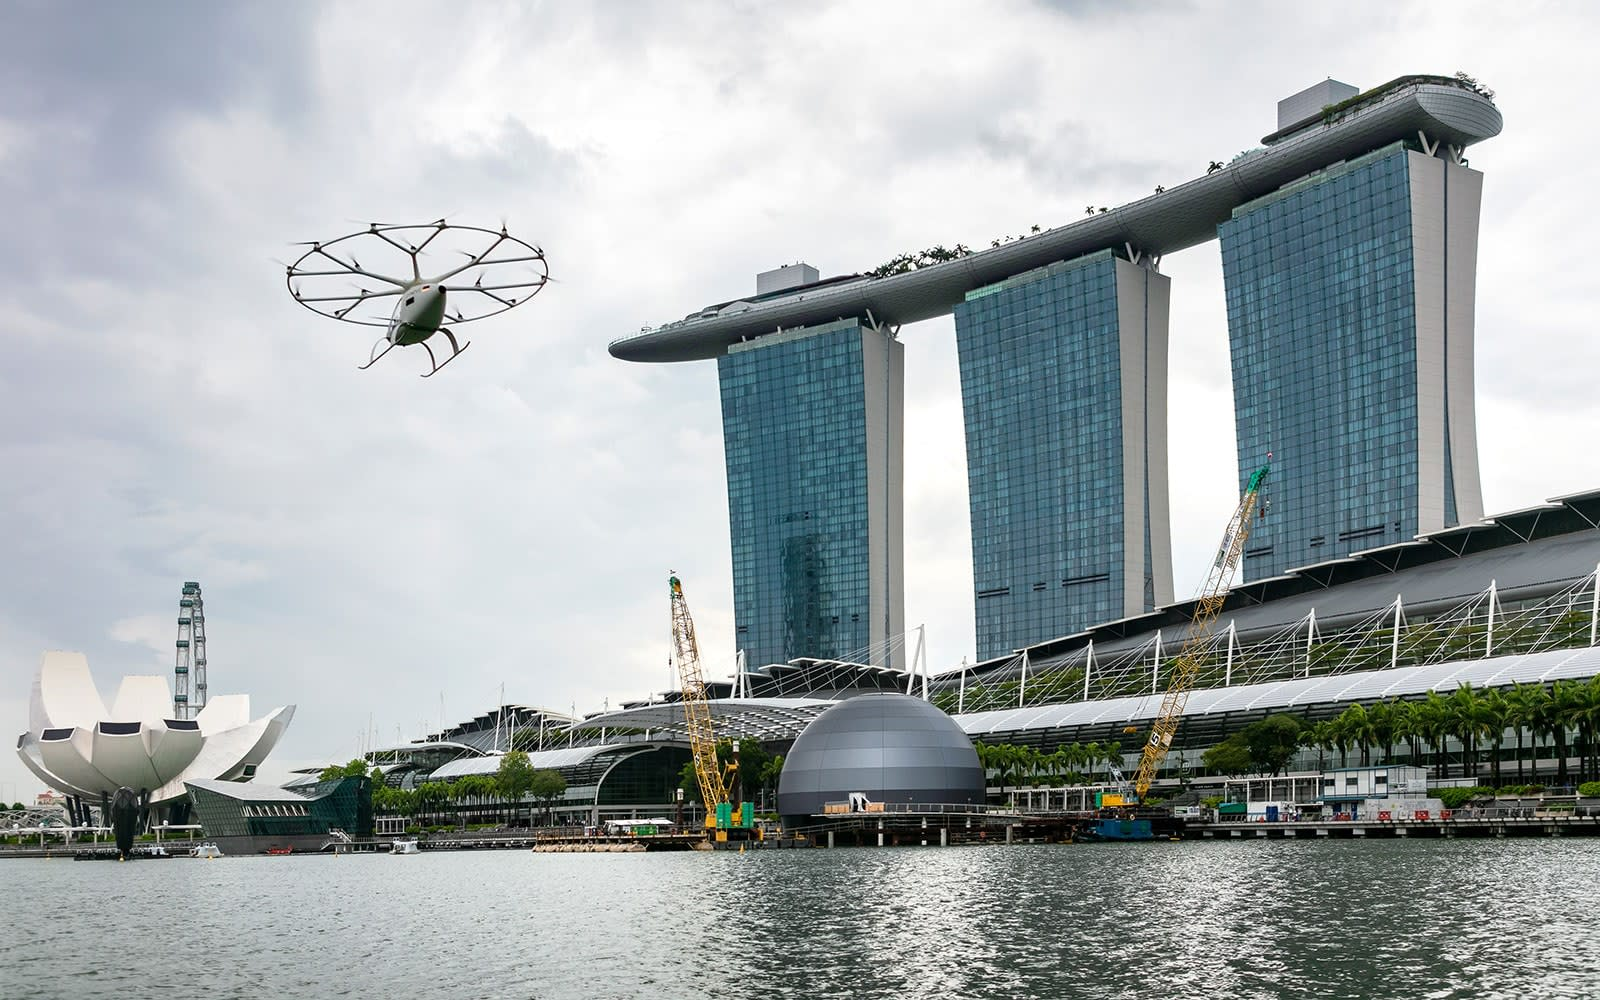 Volocopter 2X in Singapore